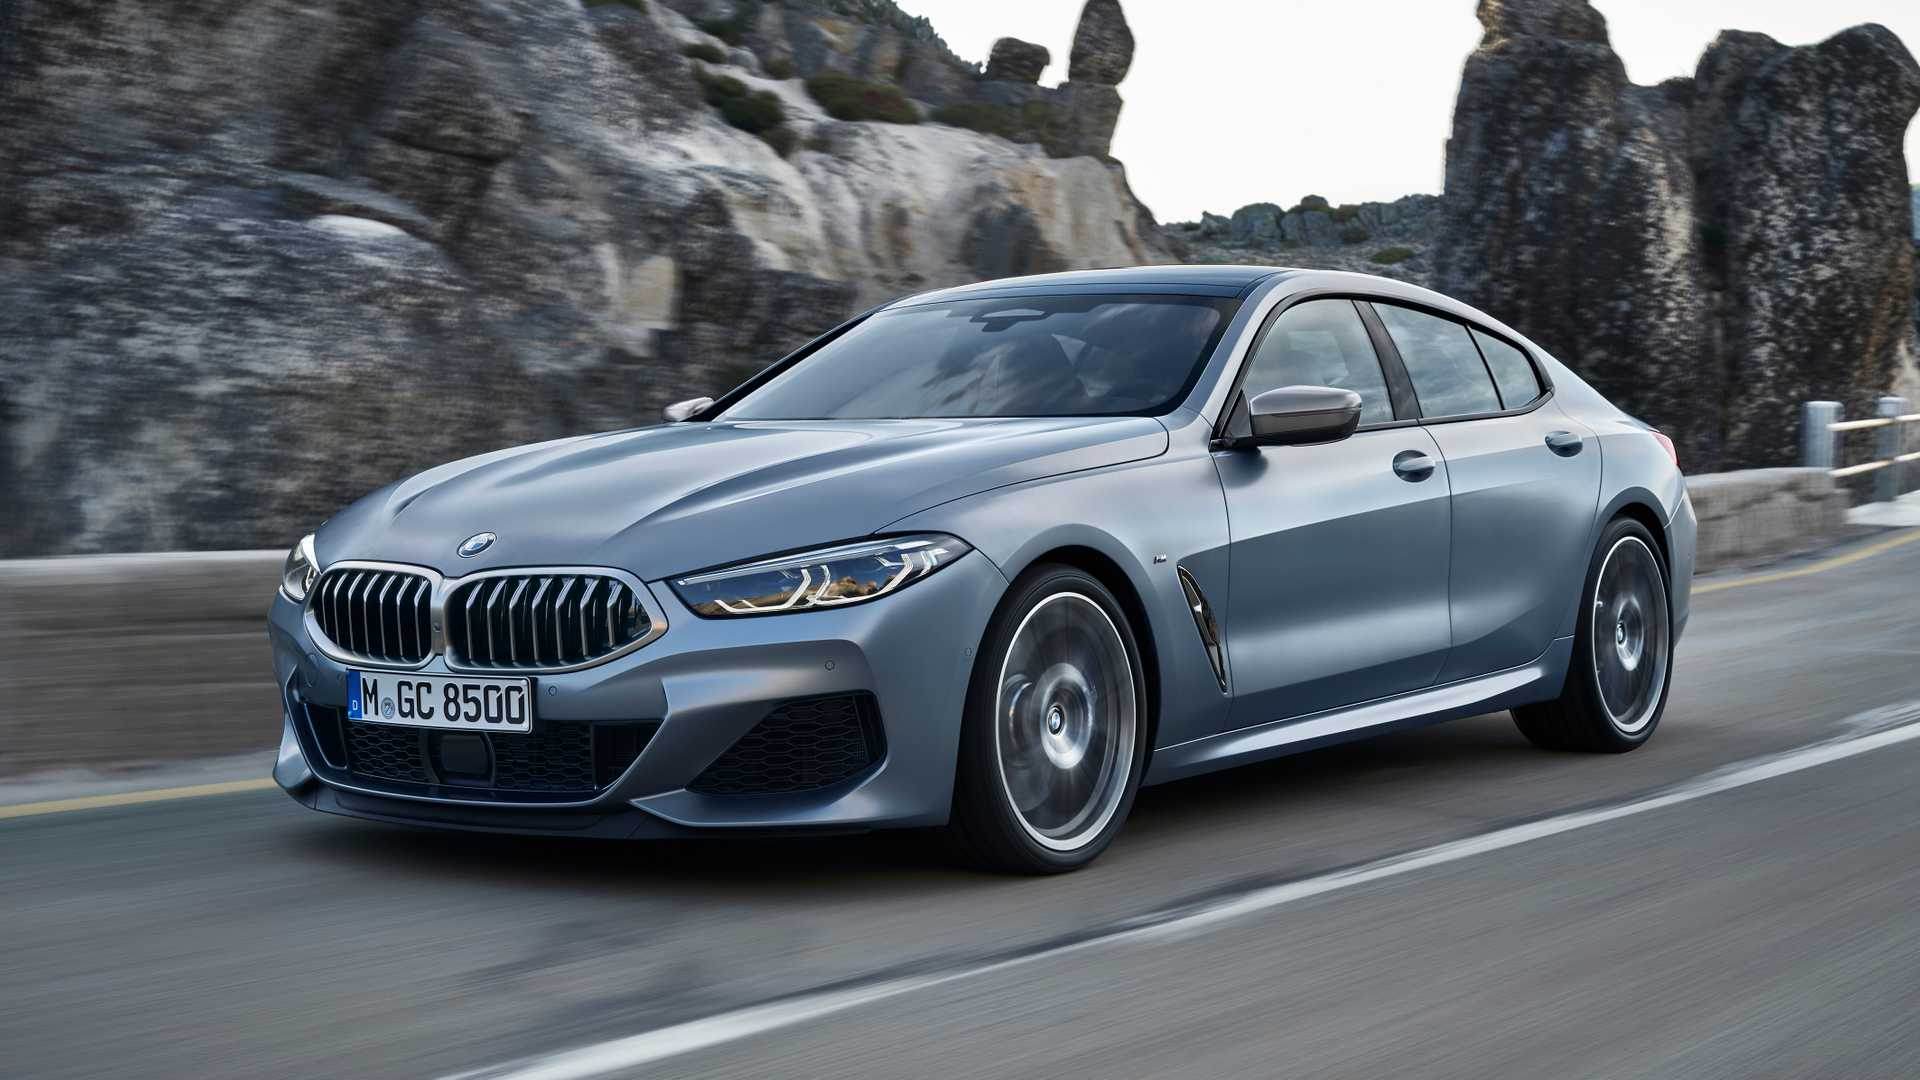 46 All New 2020 Bmw 850I Review